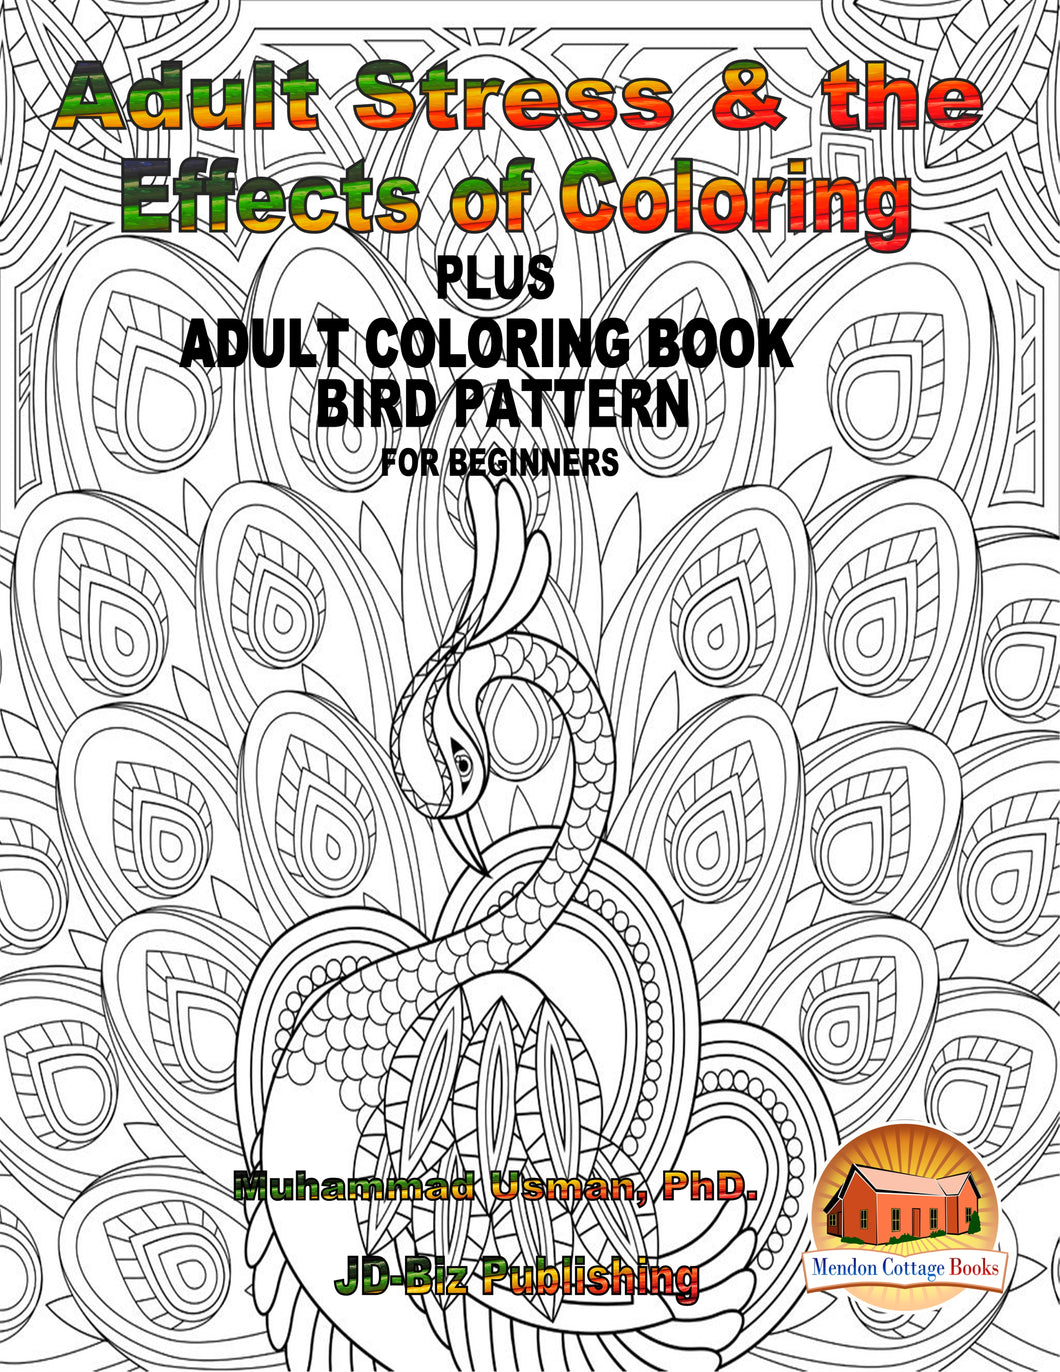 Adult Stress & the Effects of Coloring Plus - Adult Coloring Book - Bird Pattern For Beginners